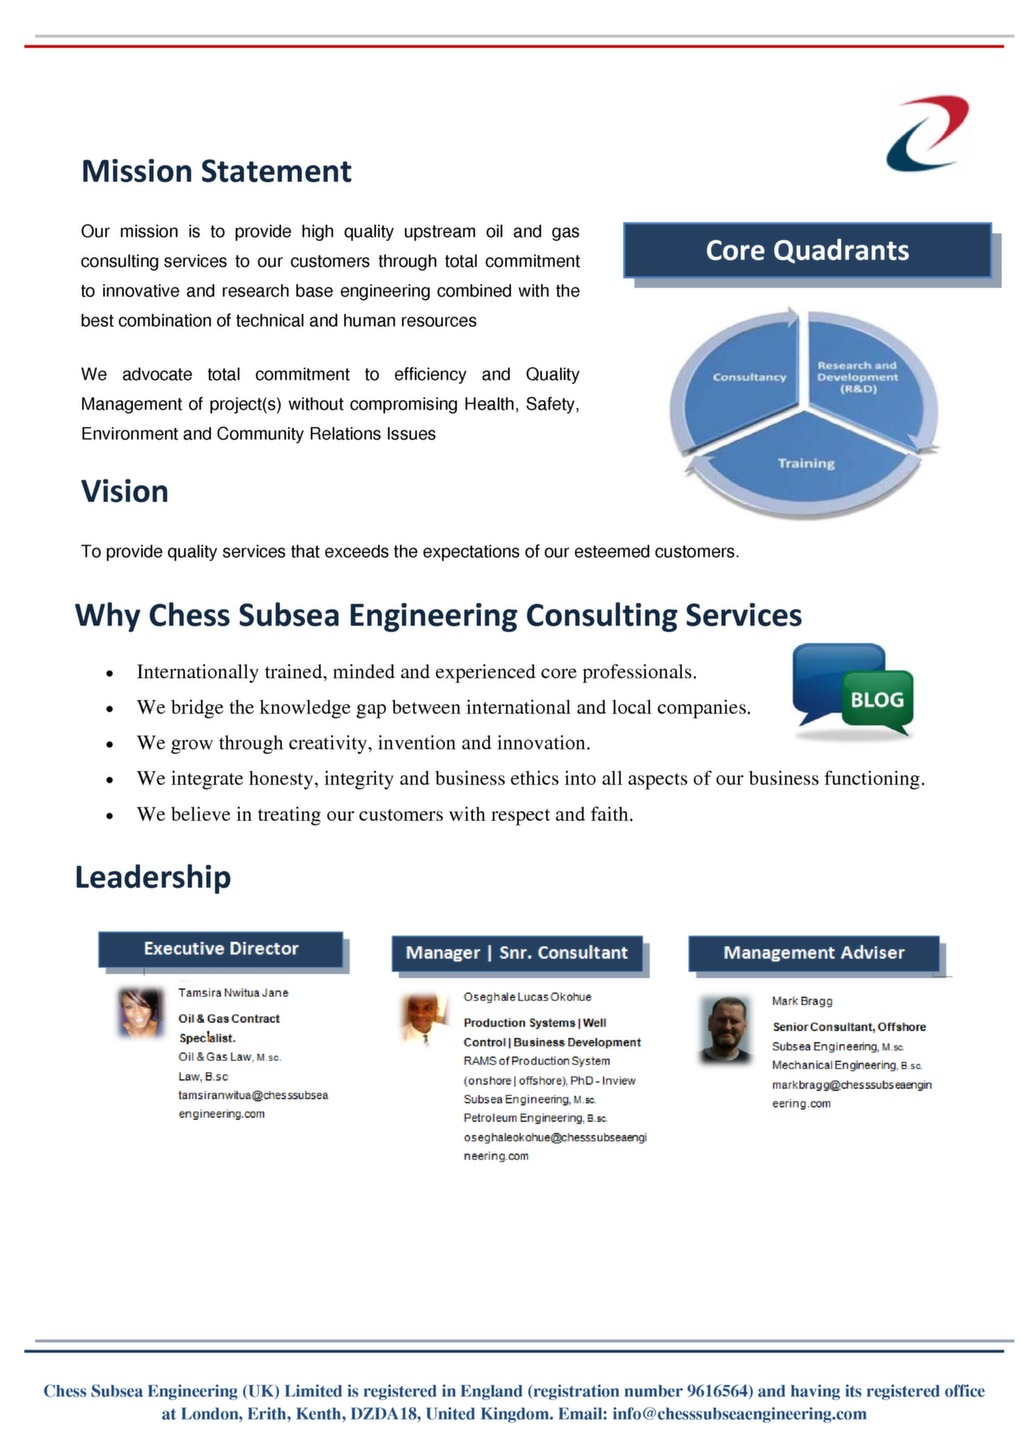 Engineering Consultancy Profile : Chess subsea engineering consulting company profile